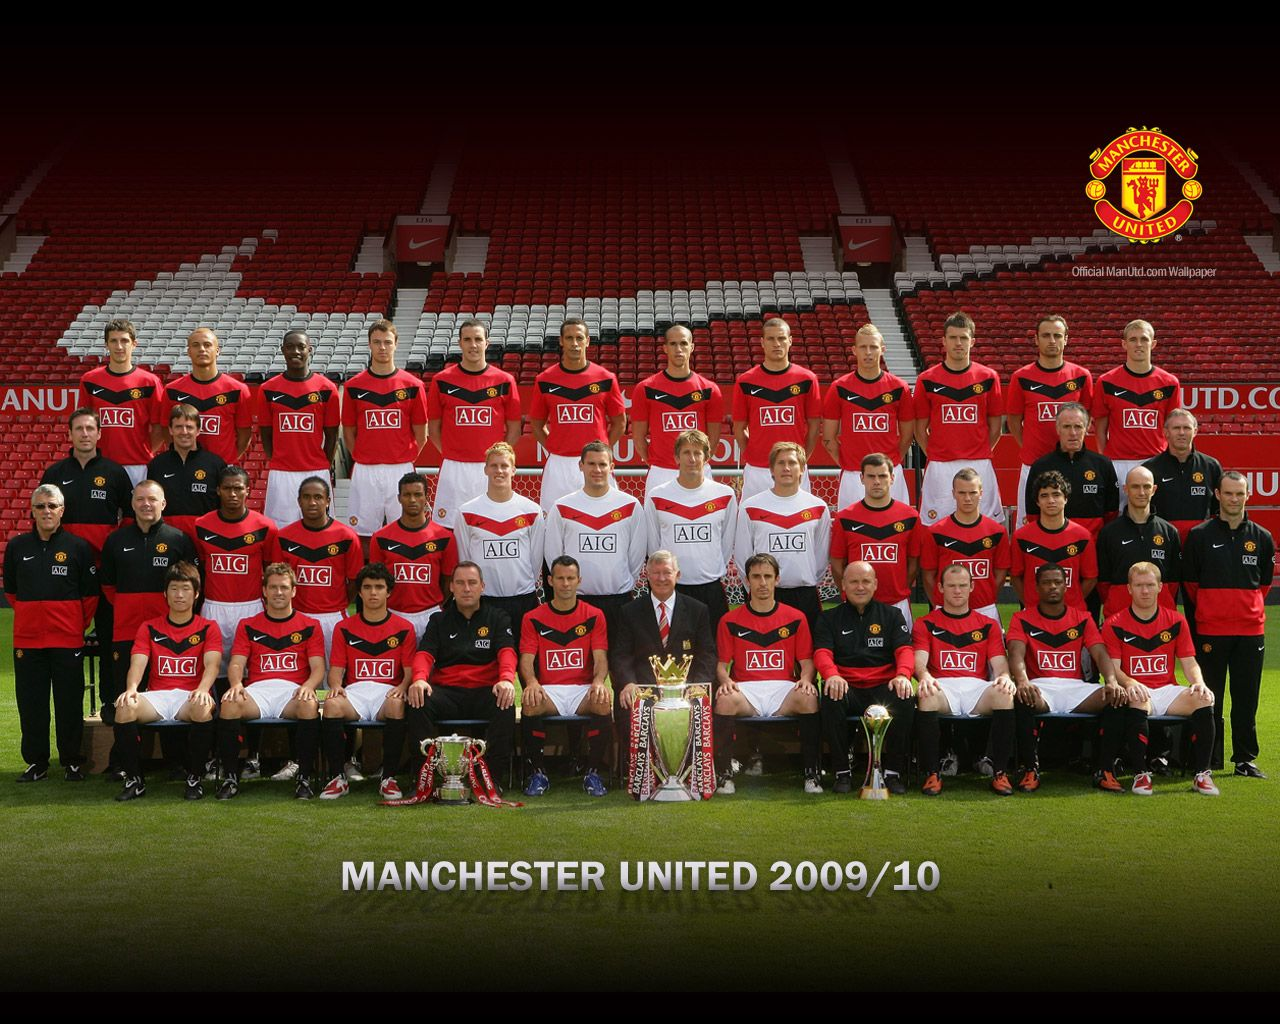 Manchester united 2009 2010 squad wallpaper manchester united manchester united 2009 2010 squad wallpaper voltagebd Images